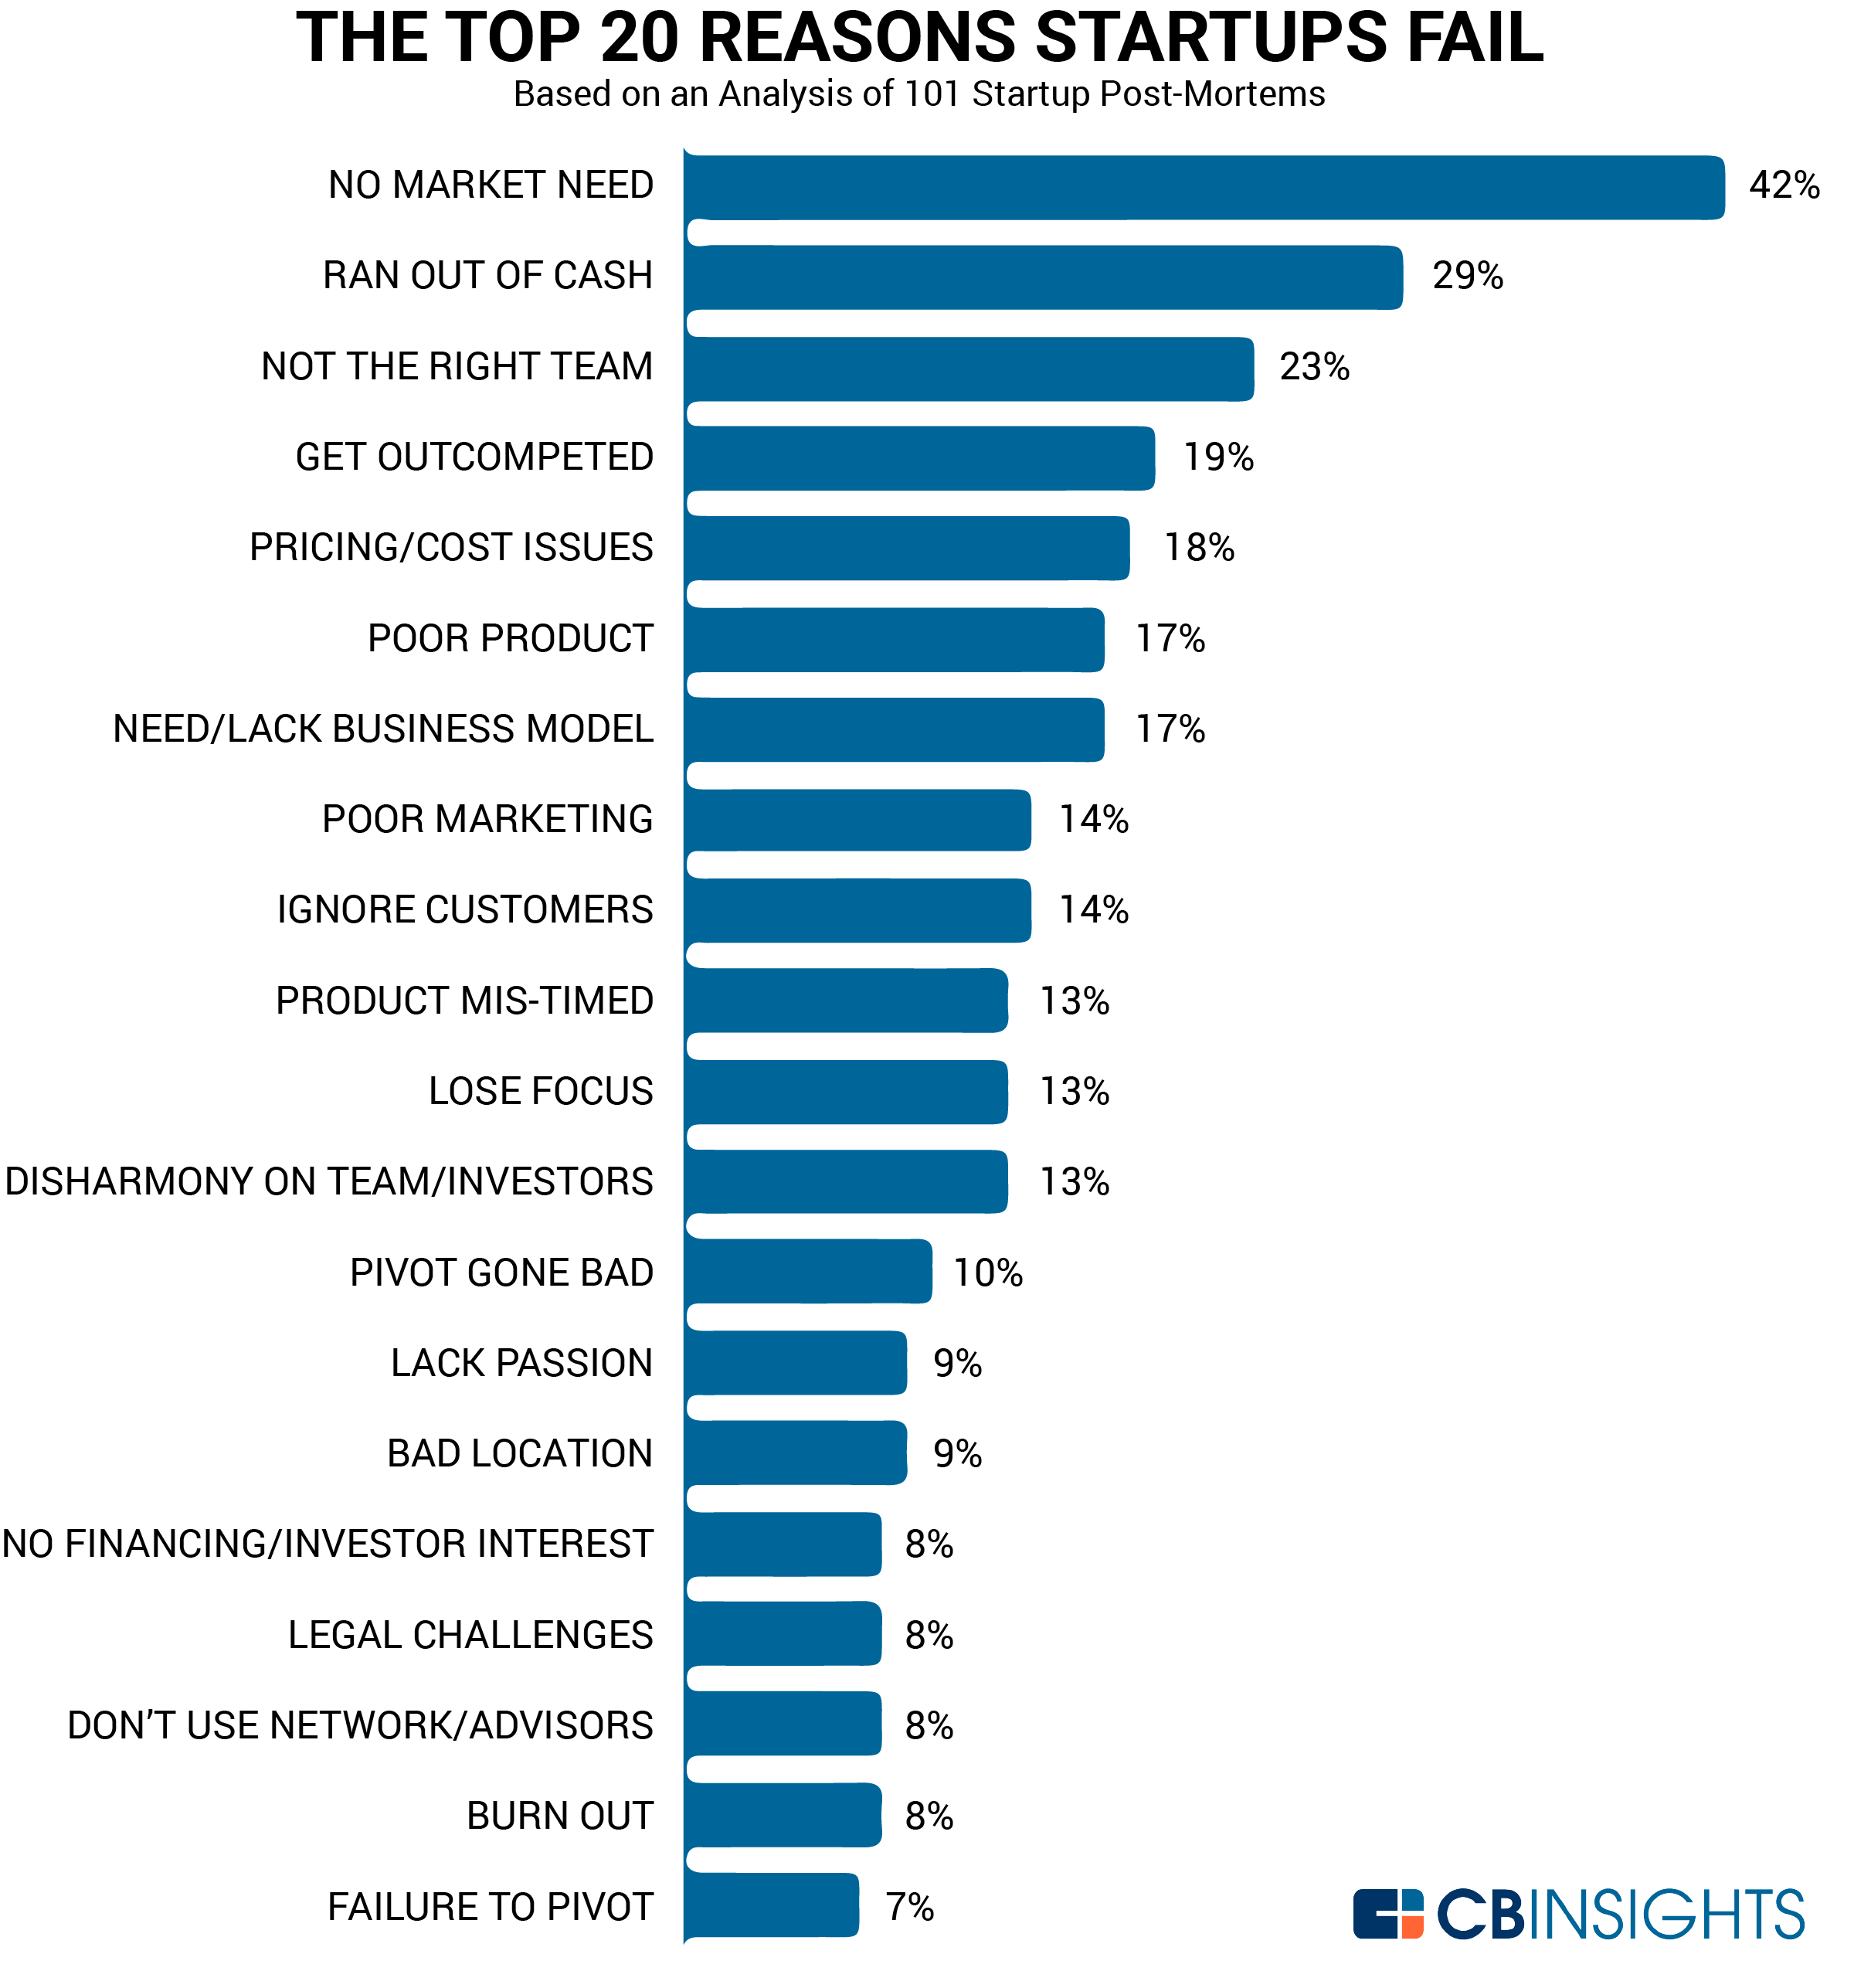 The top 20 reasons startup fail